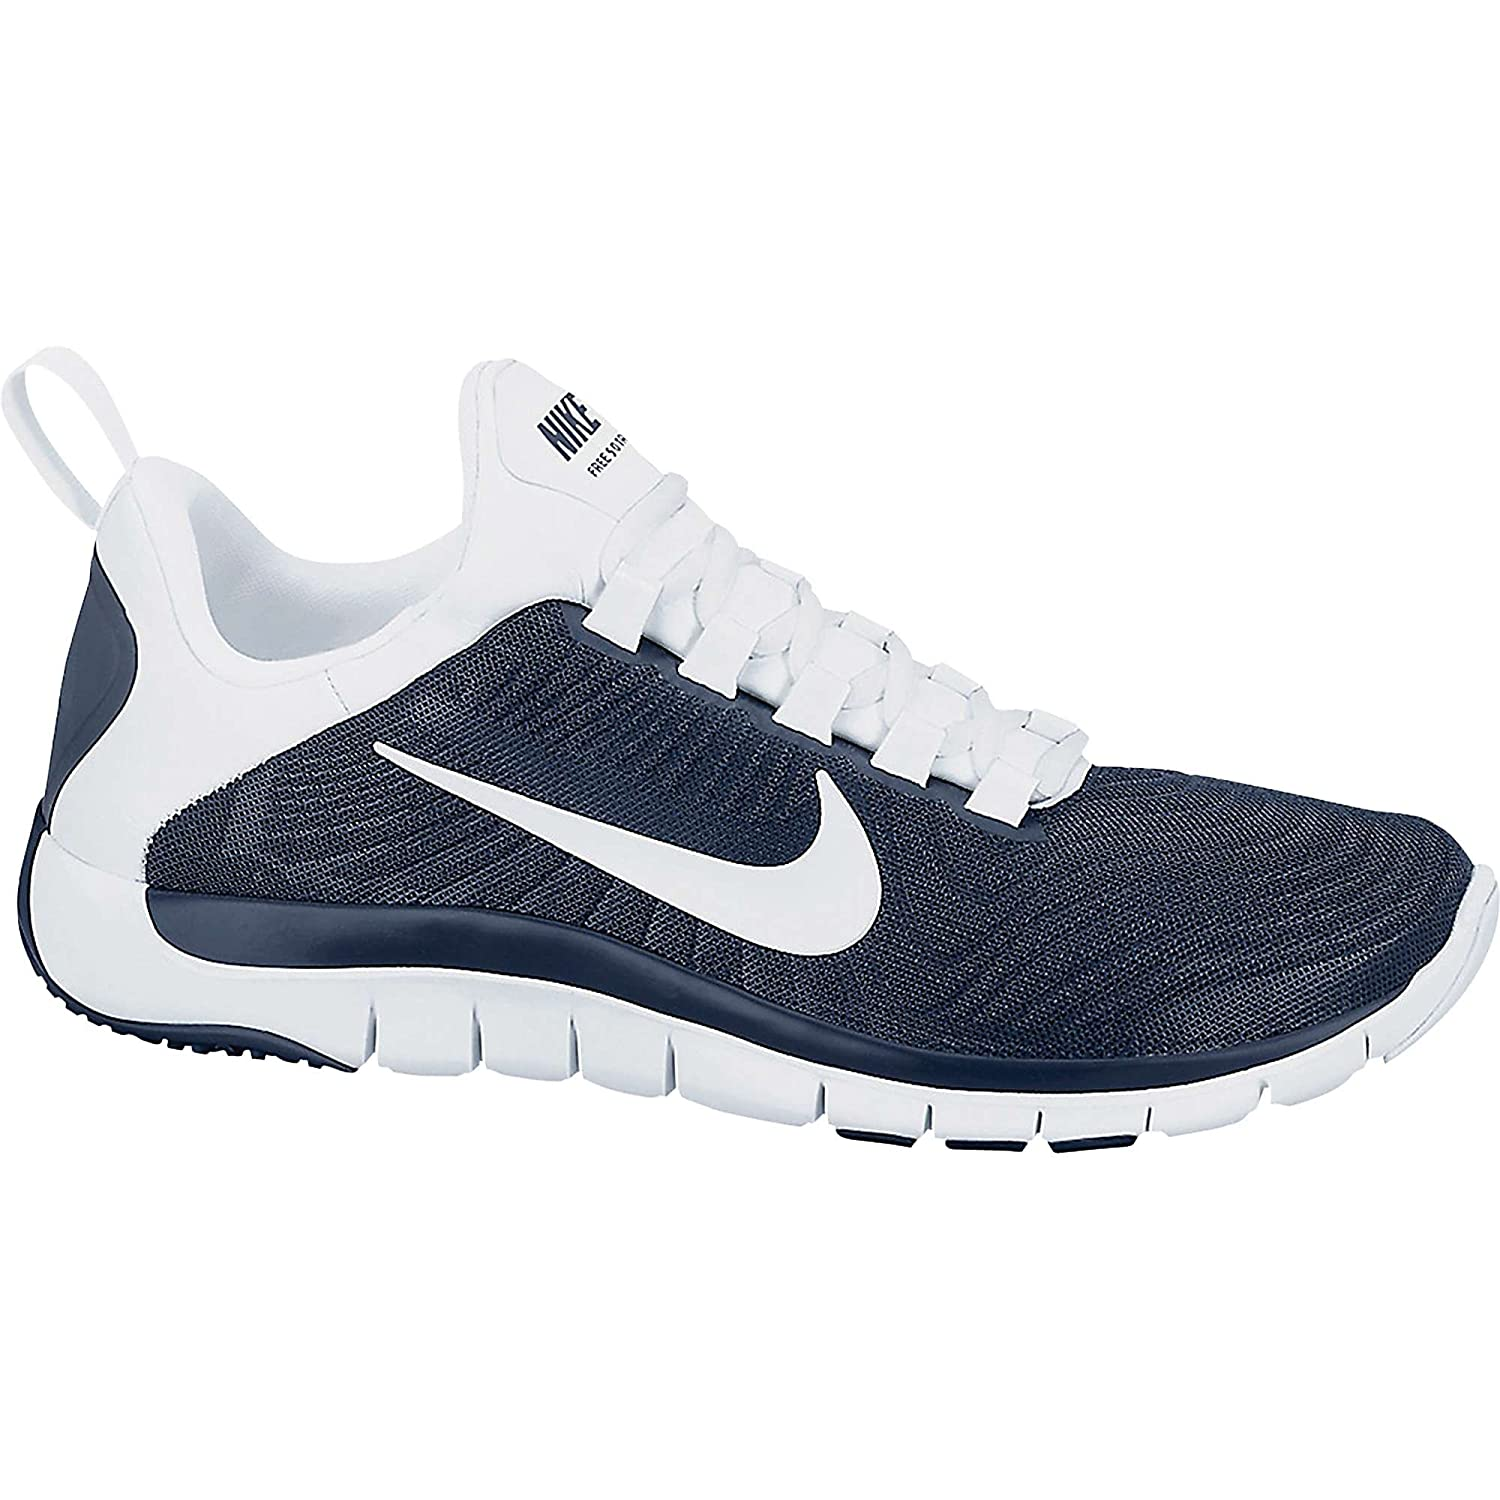 Nike Free Workout Shoes